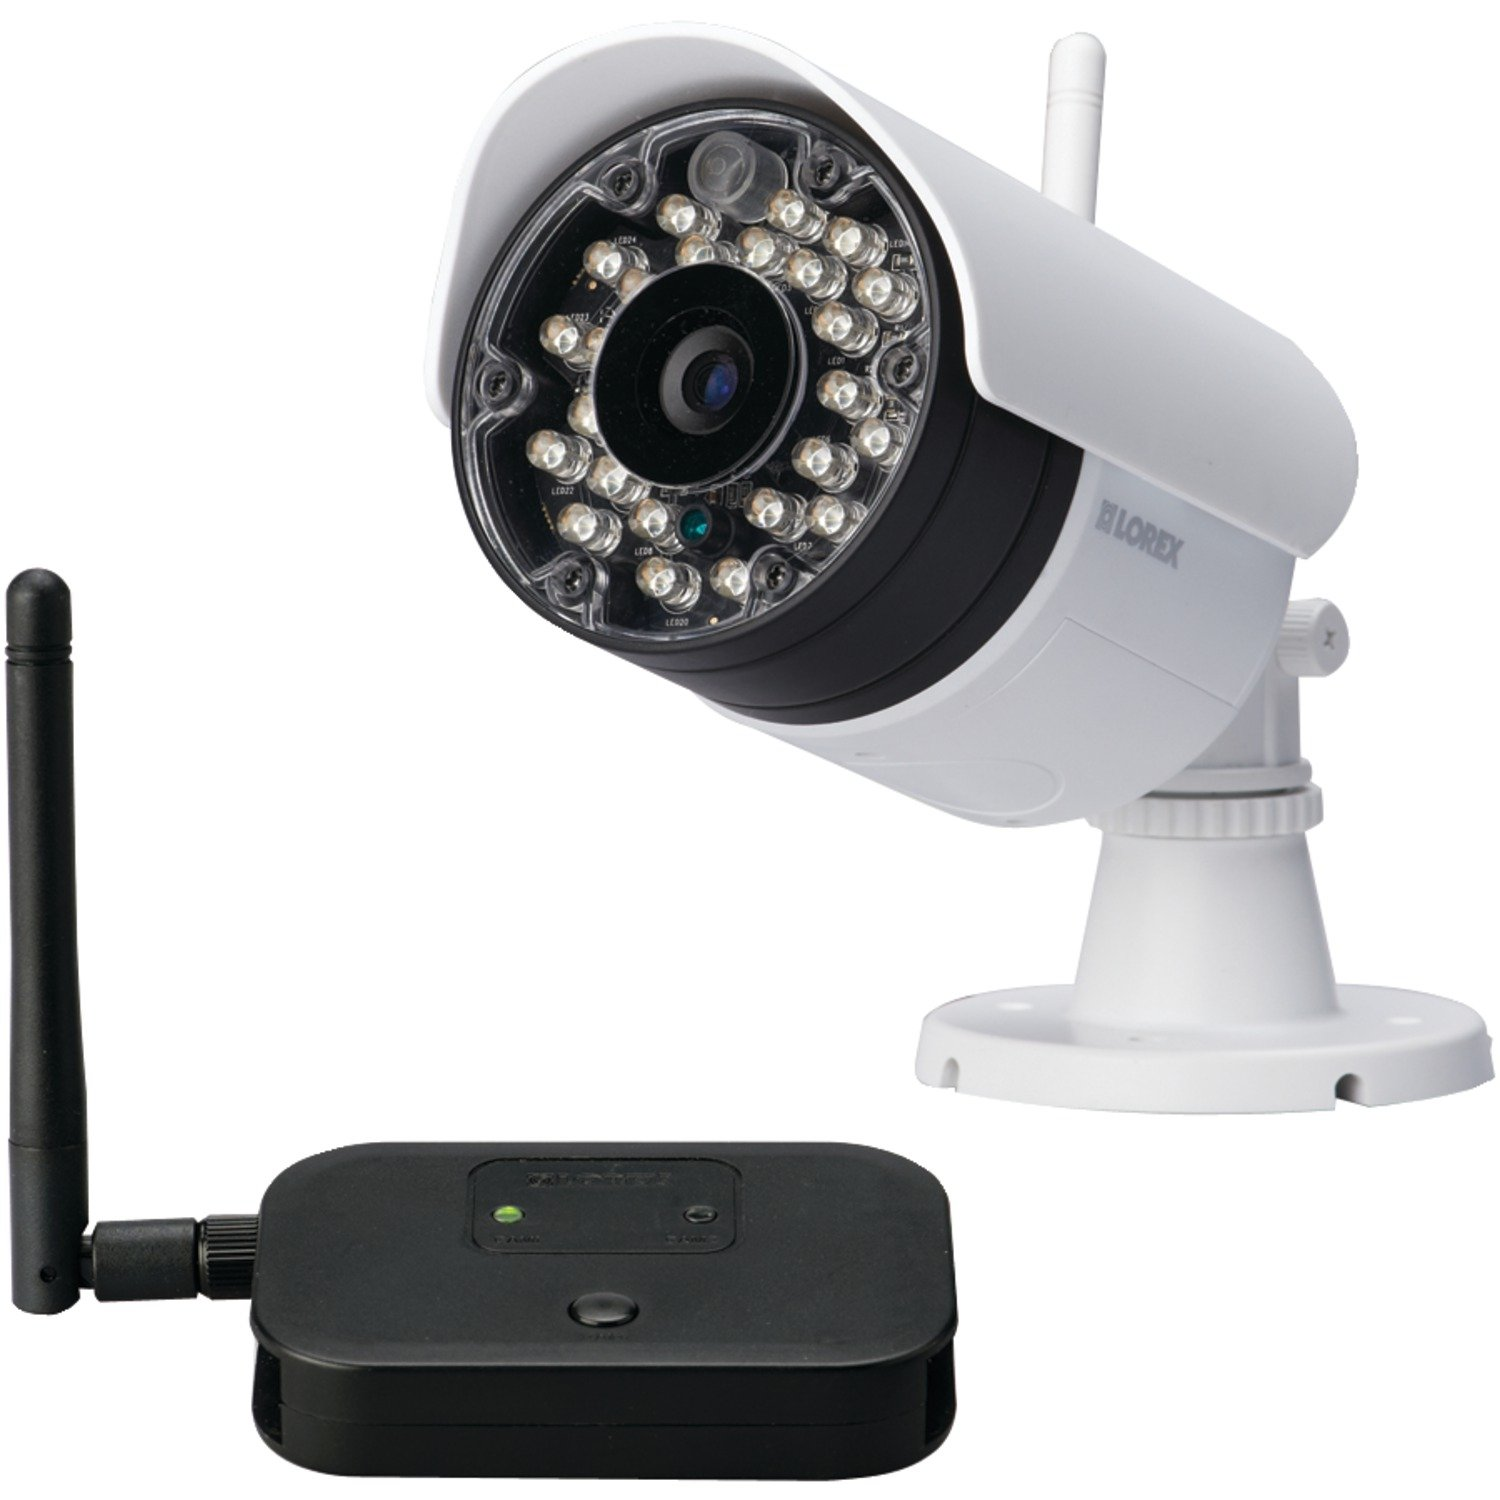 713yanMfqXL._SL1500_ amazon com lorex lw2231 wireless cctv security camera (white lorex camera wiring diagram at nearapp.co